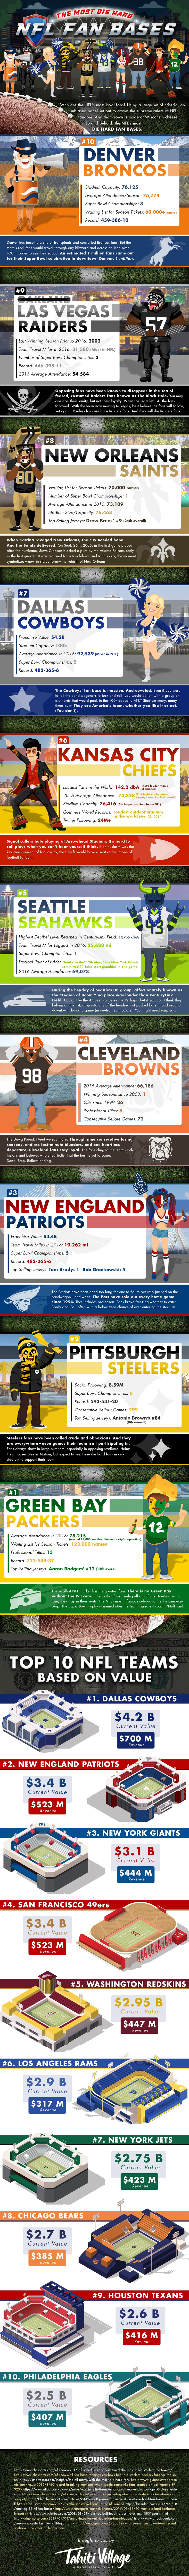 most diehard nfl fan bases infographic